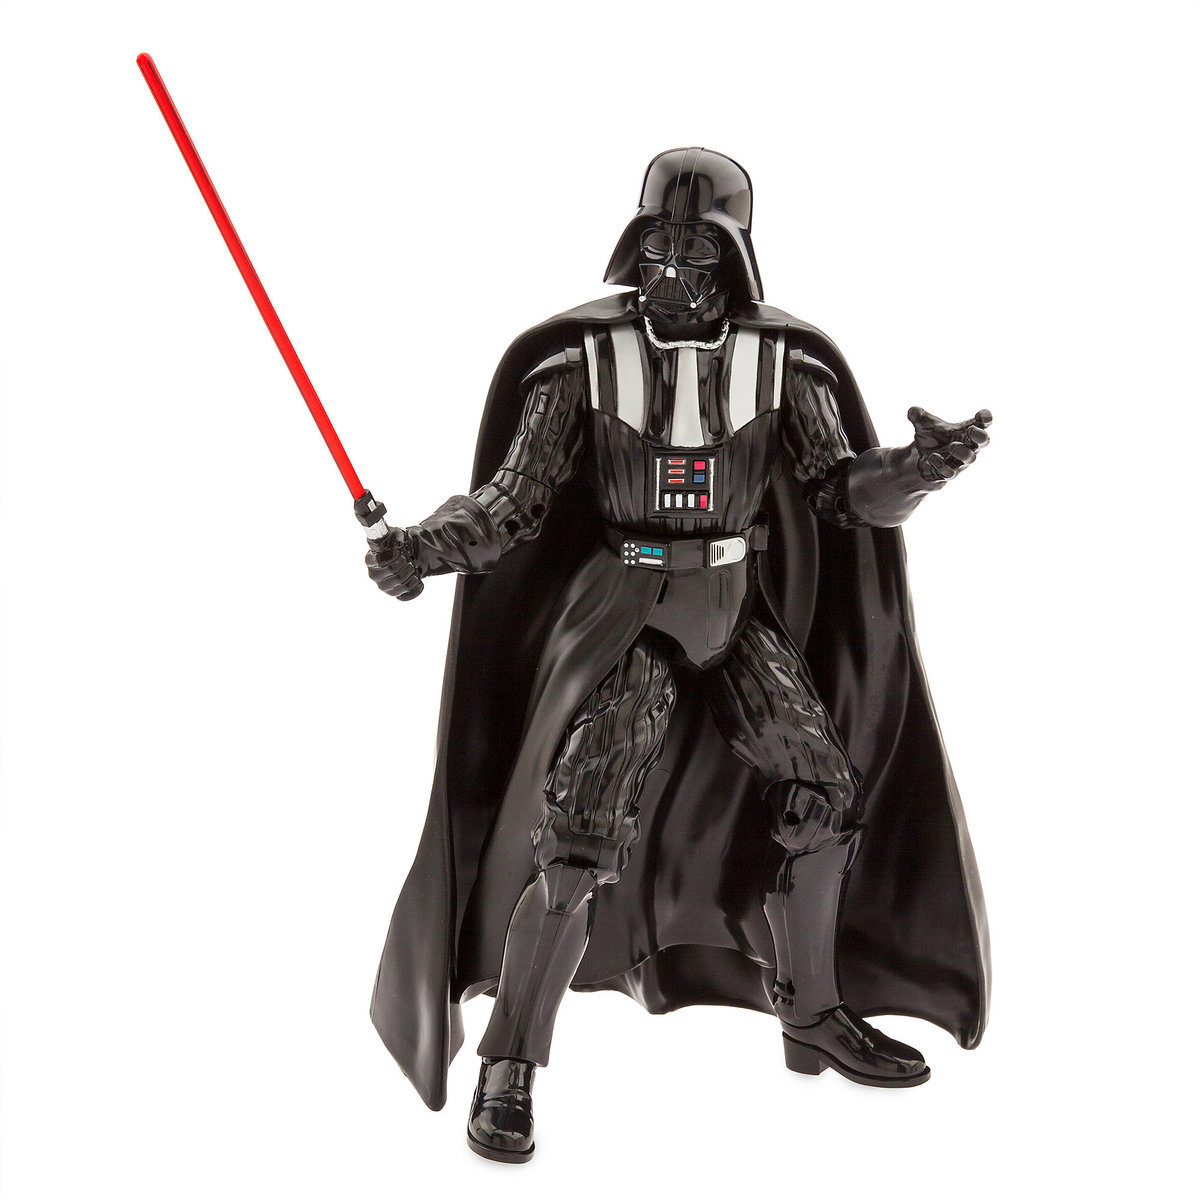 19e0d335ac0c98 Product Image of Darth Vader Talking Action Figure - 14 1/2'' #